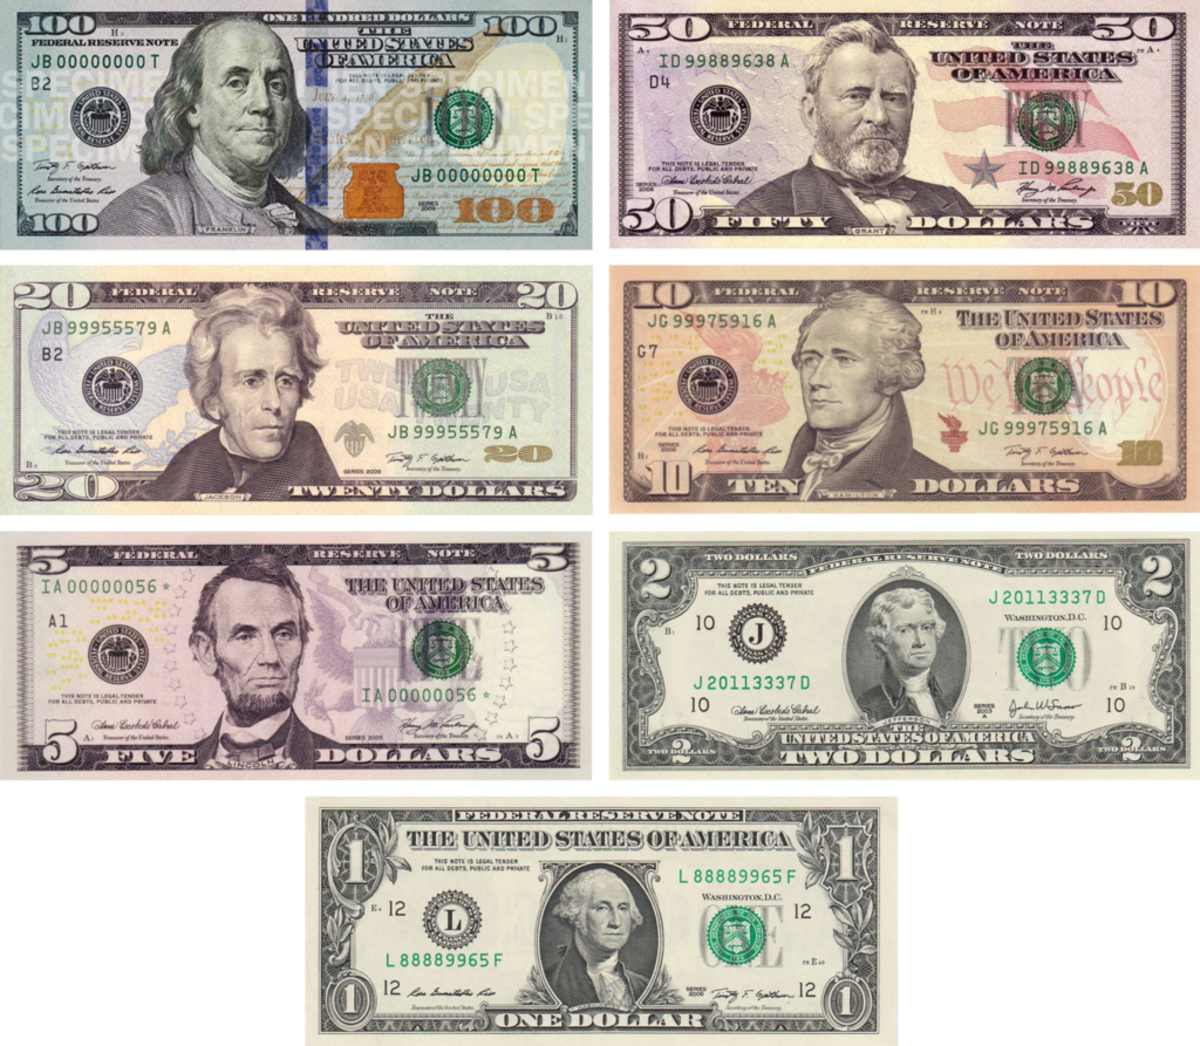 The current US notes have improved security features to prevent counterfeiting.